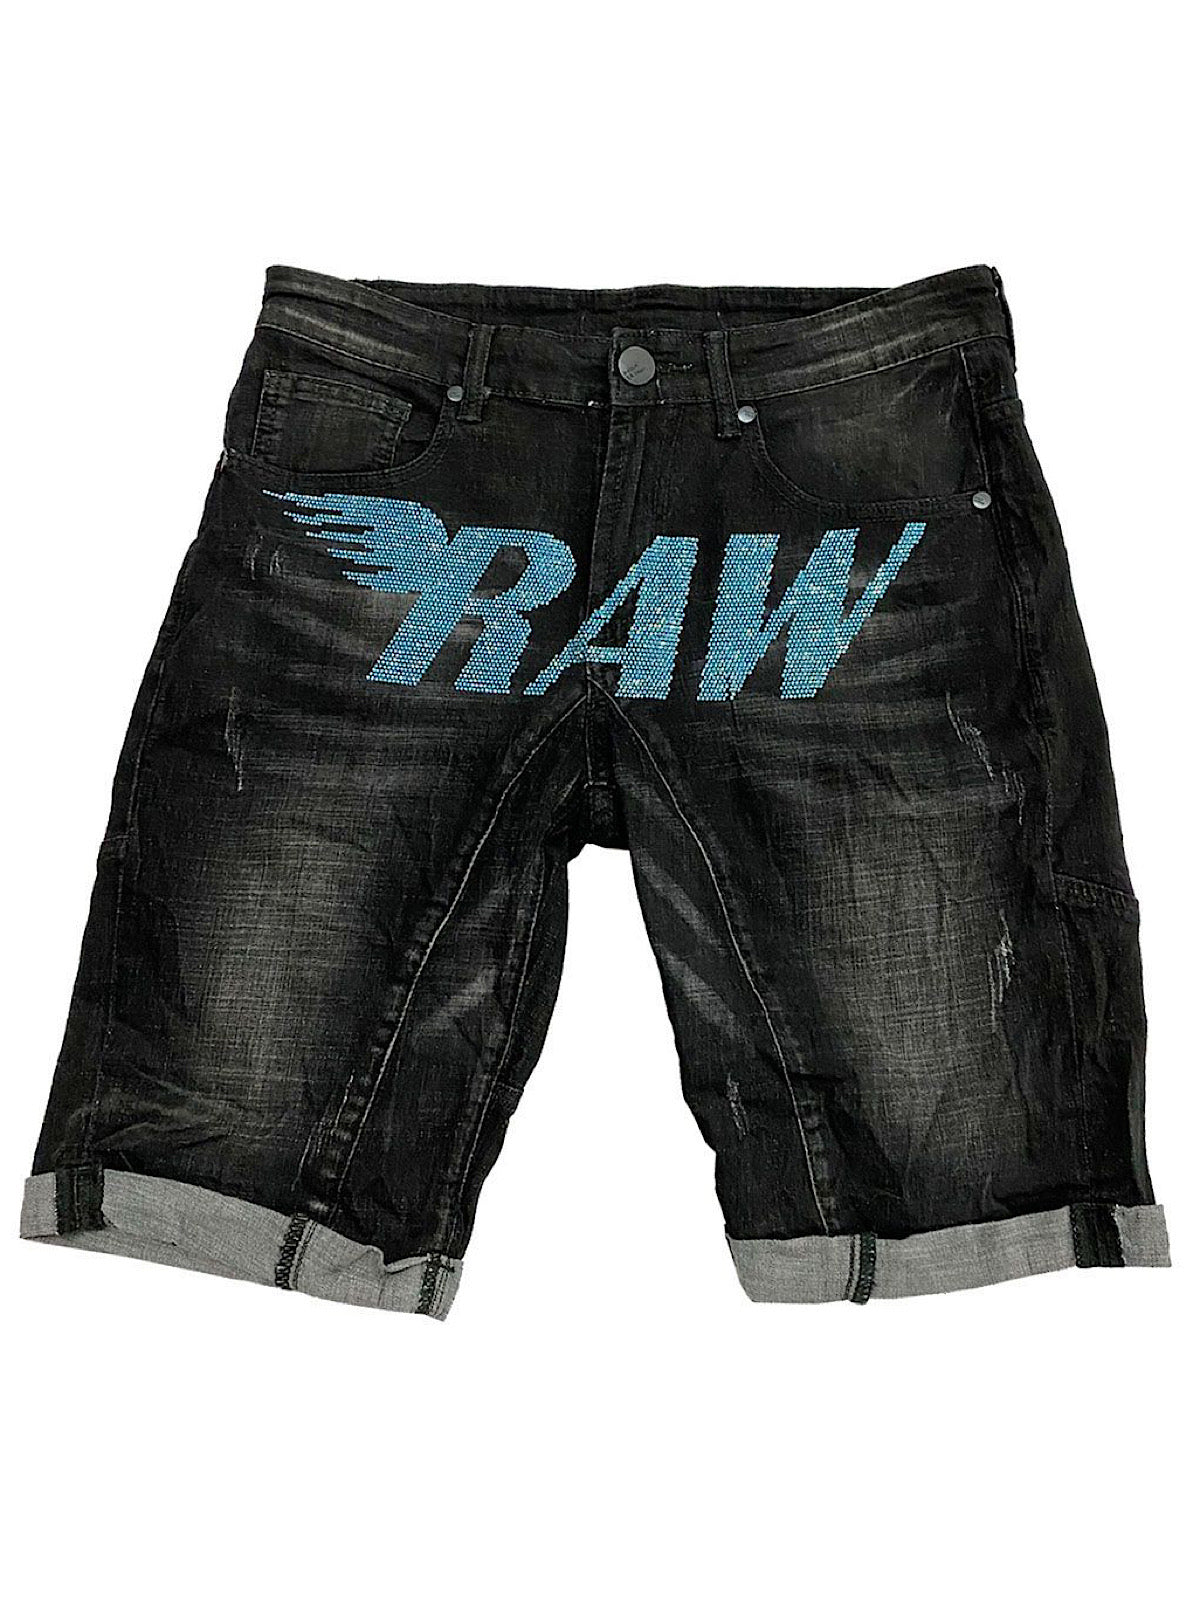 Rawyalty Denim Shorts - Stones - Aqua on Black